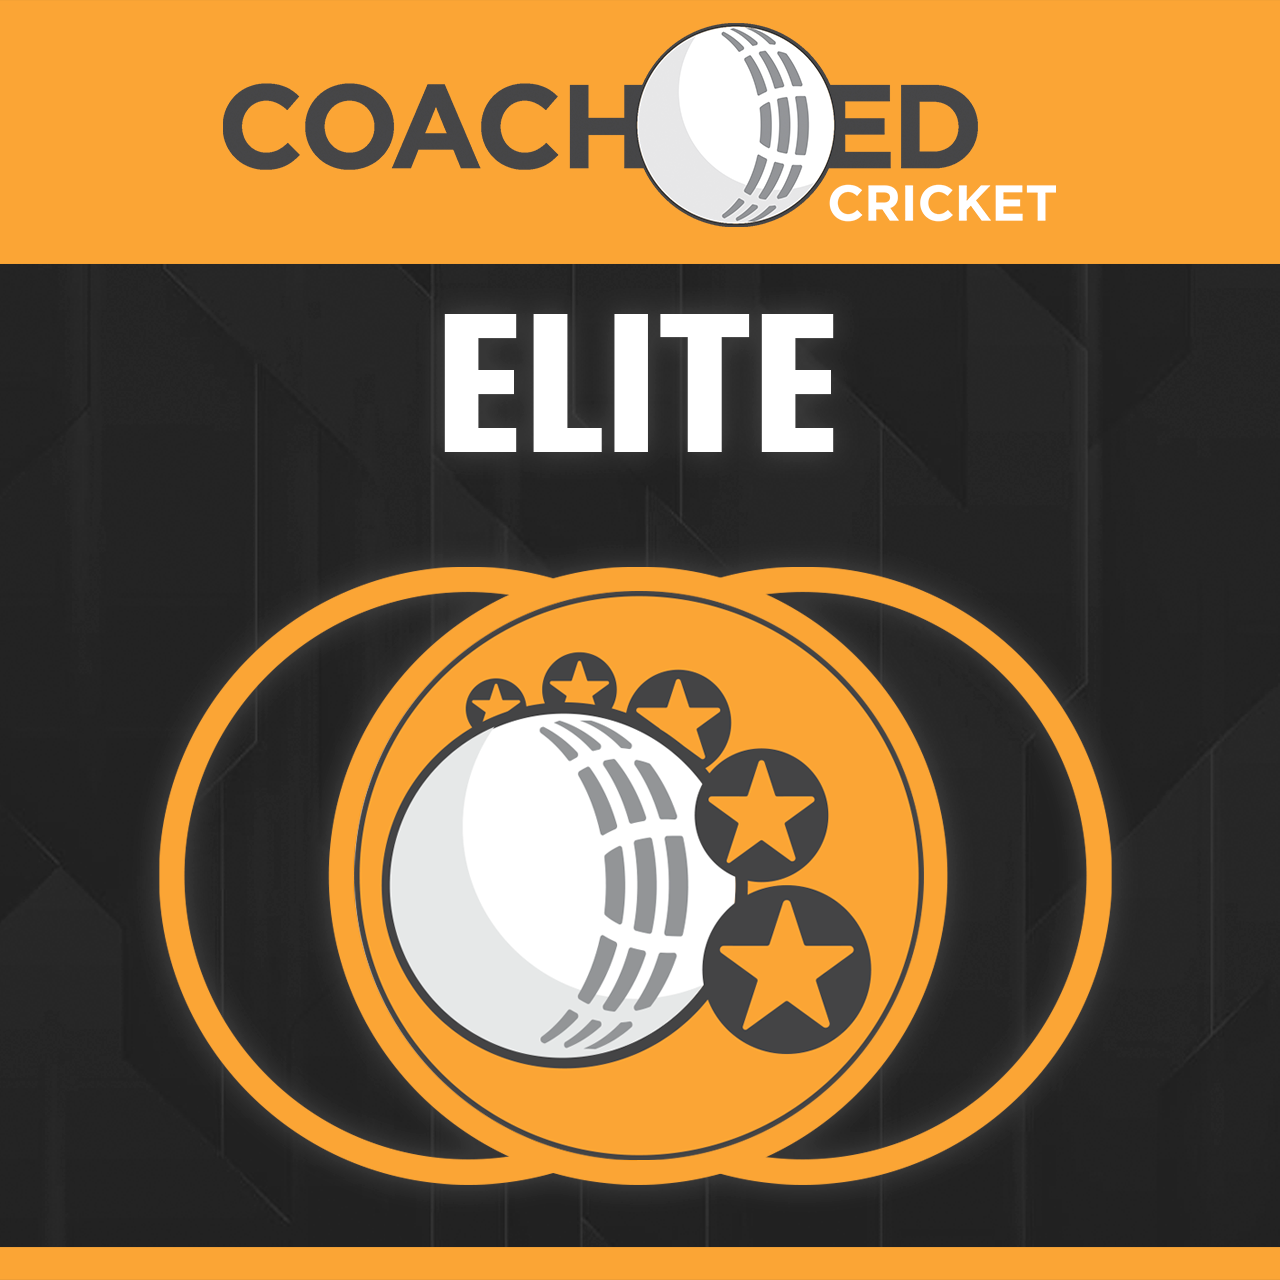 CoachED Cricket ELITE Accreditation Apply